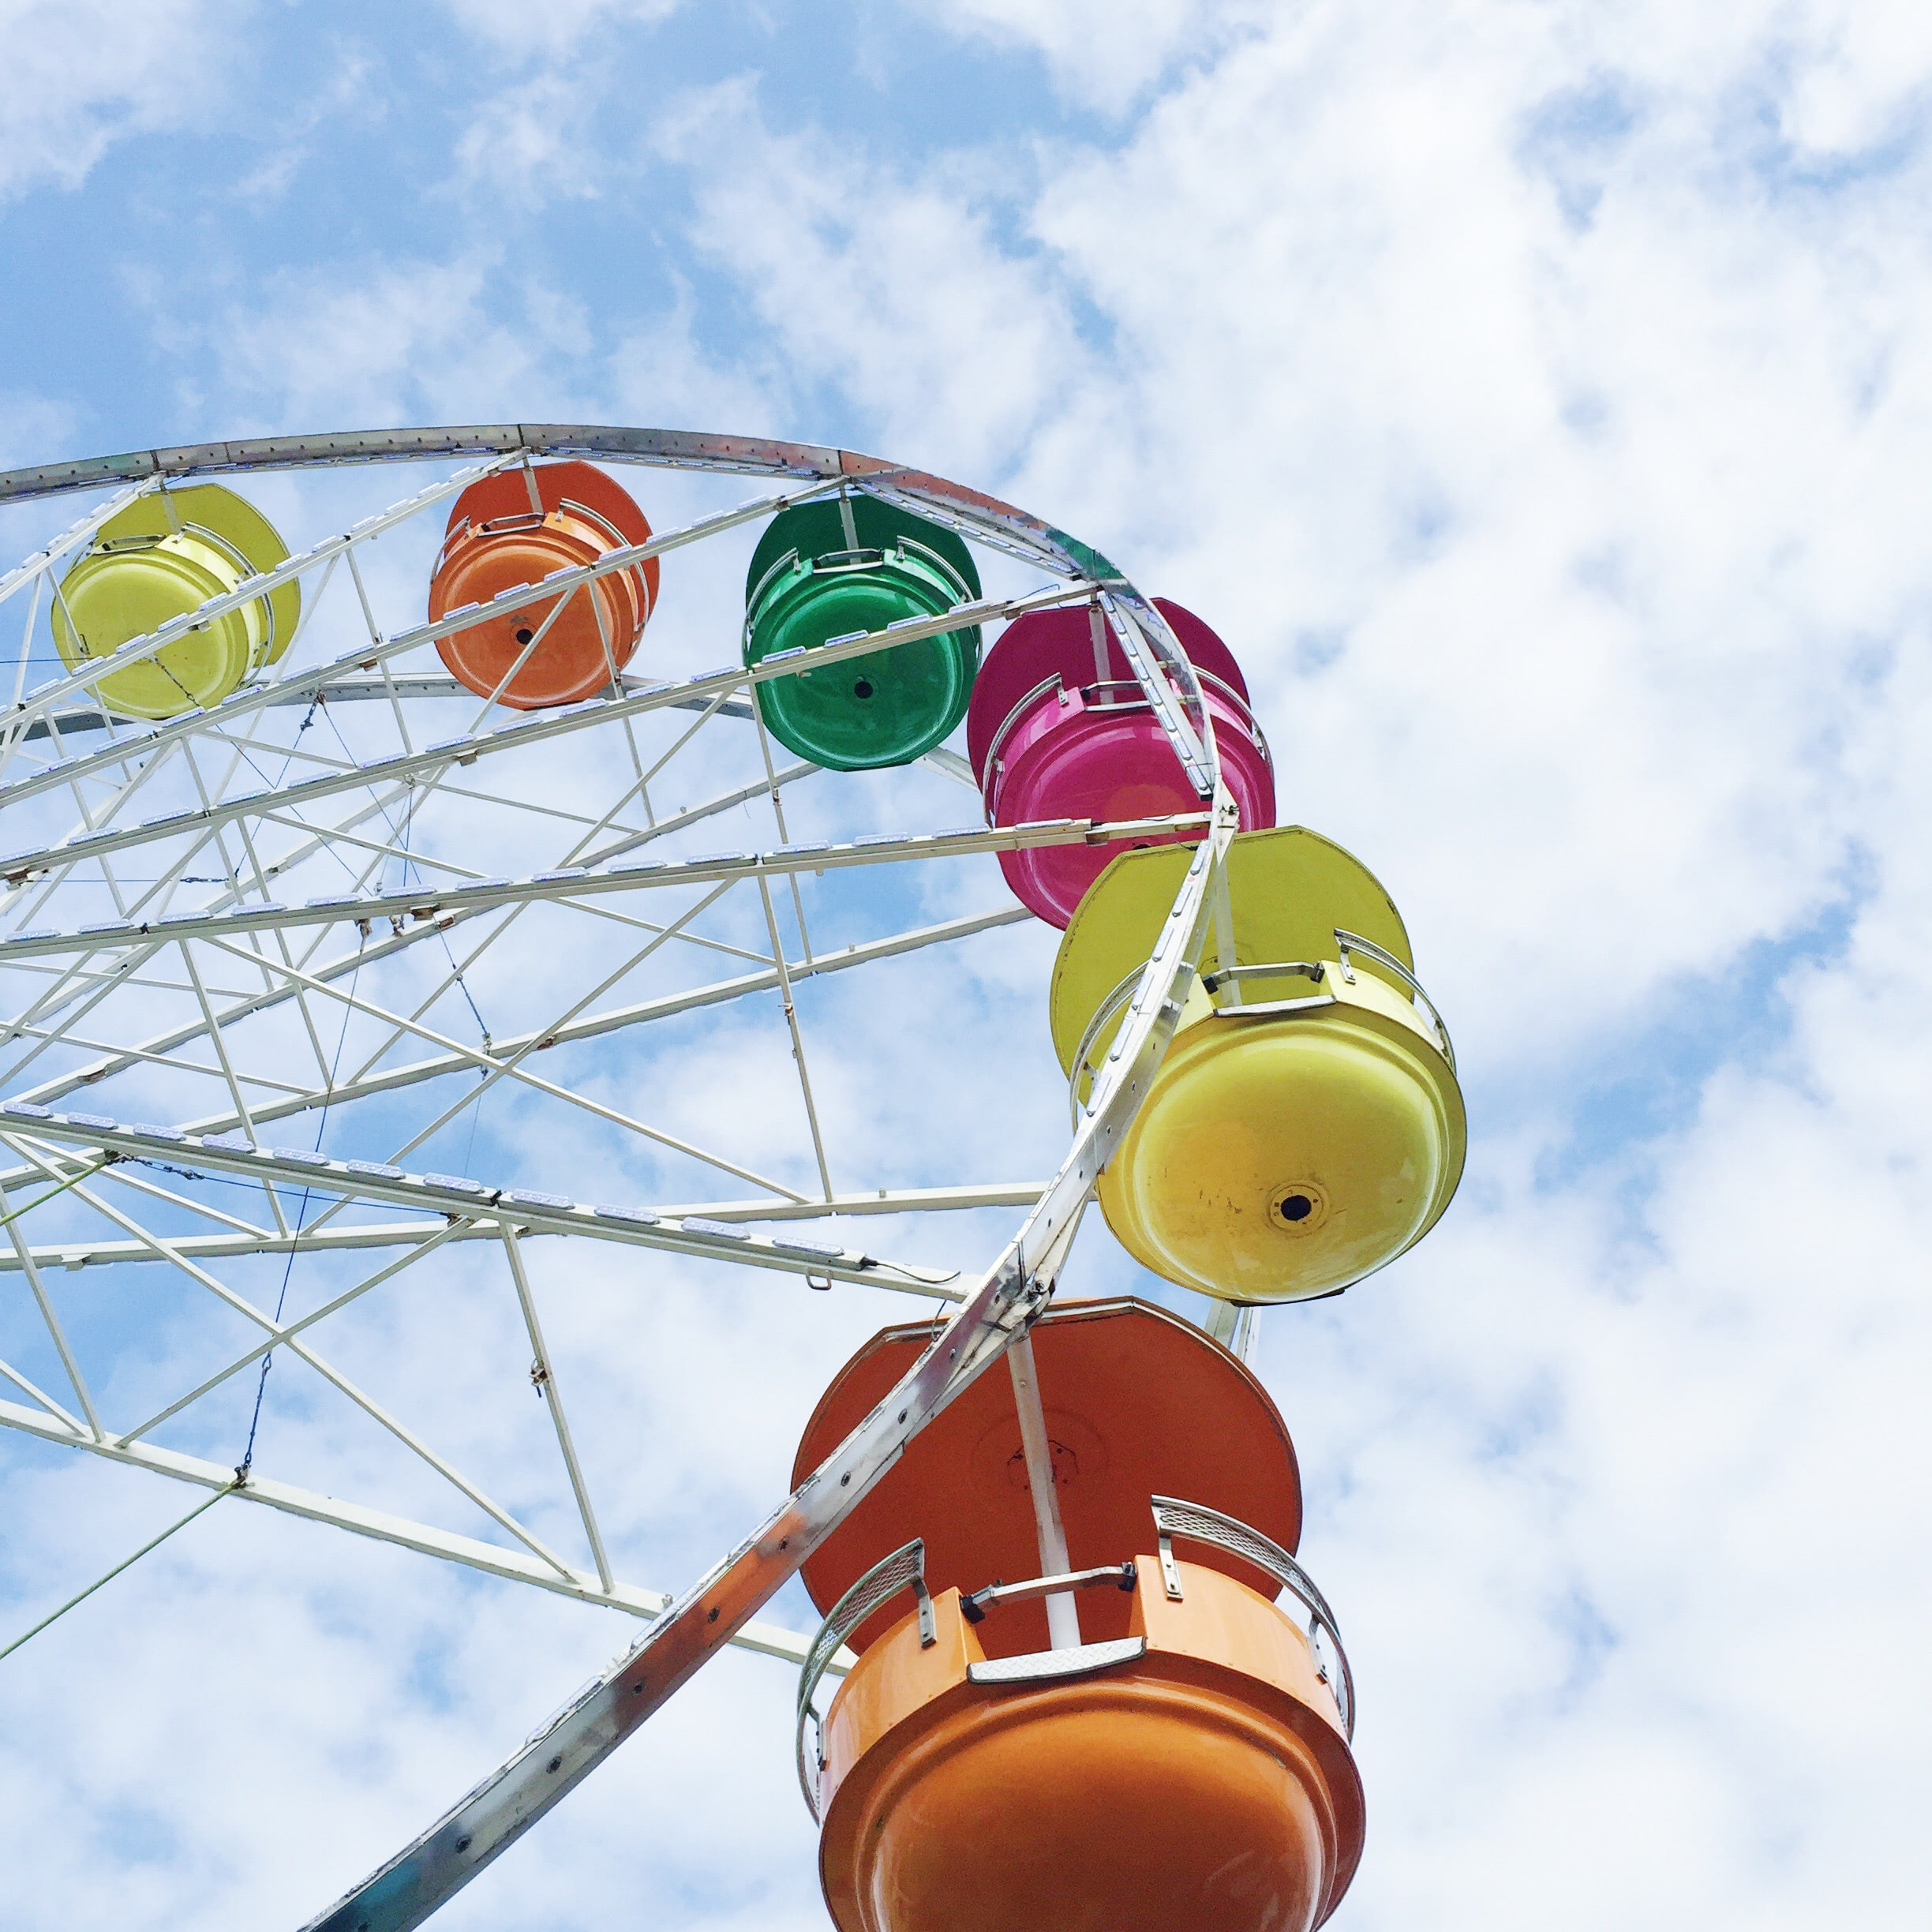 ferris wheel, outdoor